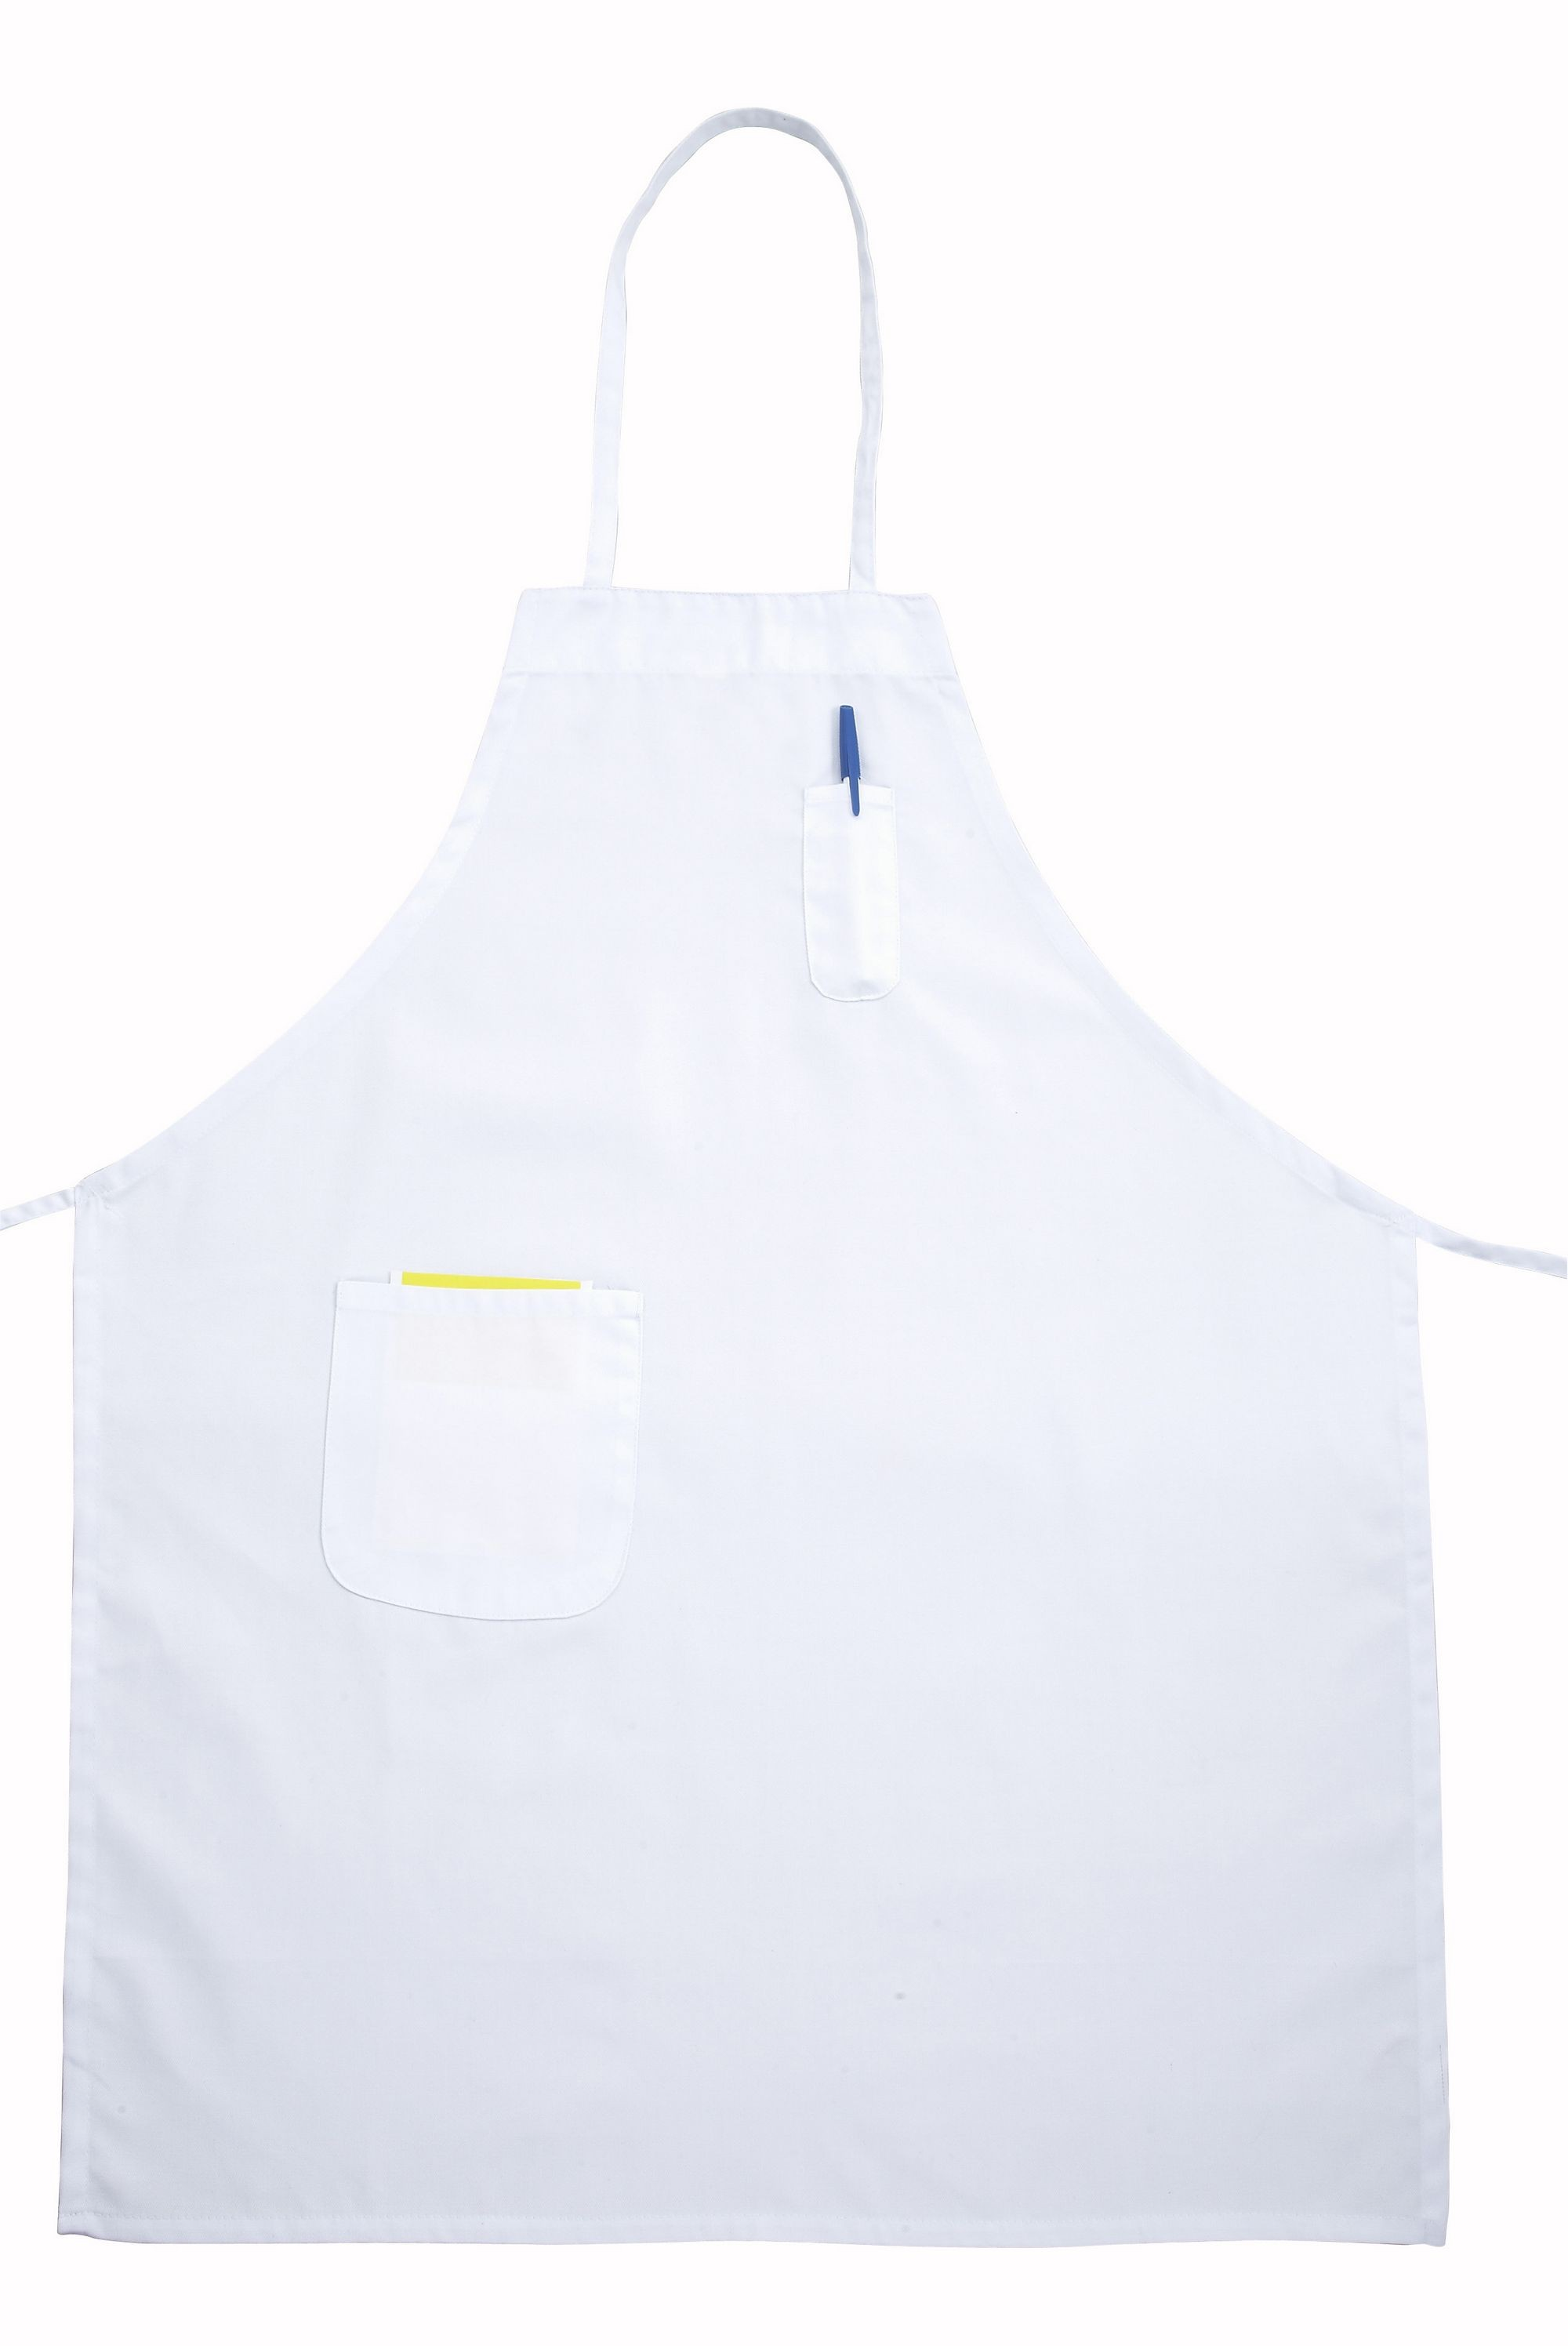 Winco BA-PWH Full-Length White Bib Apron with Pocket